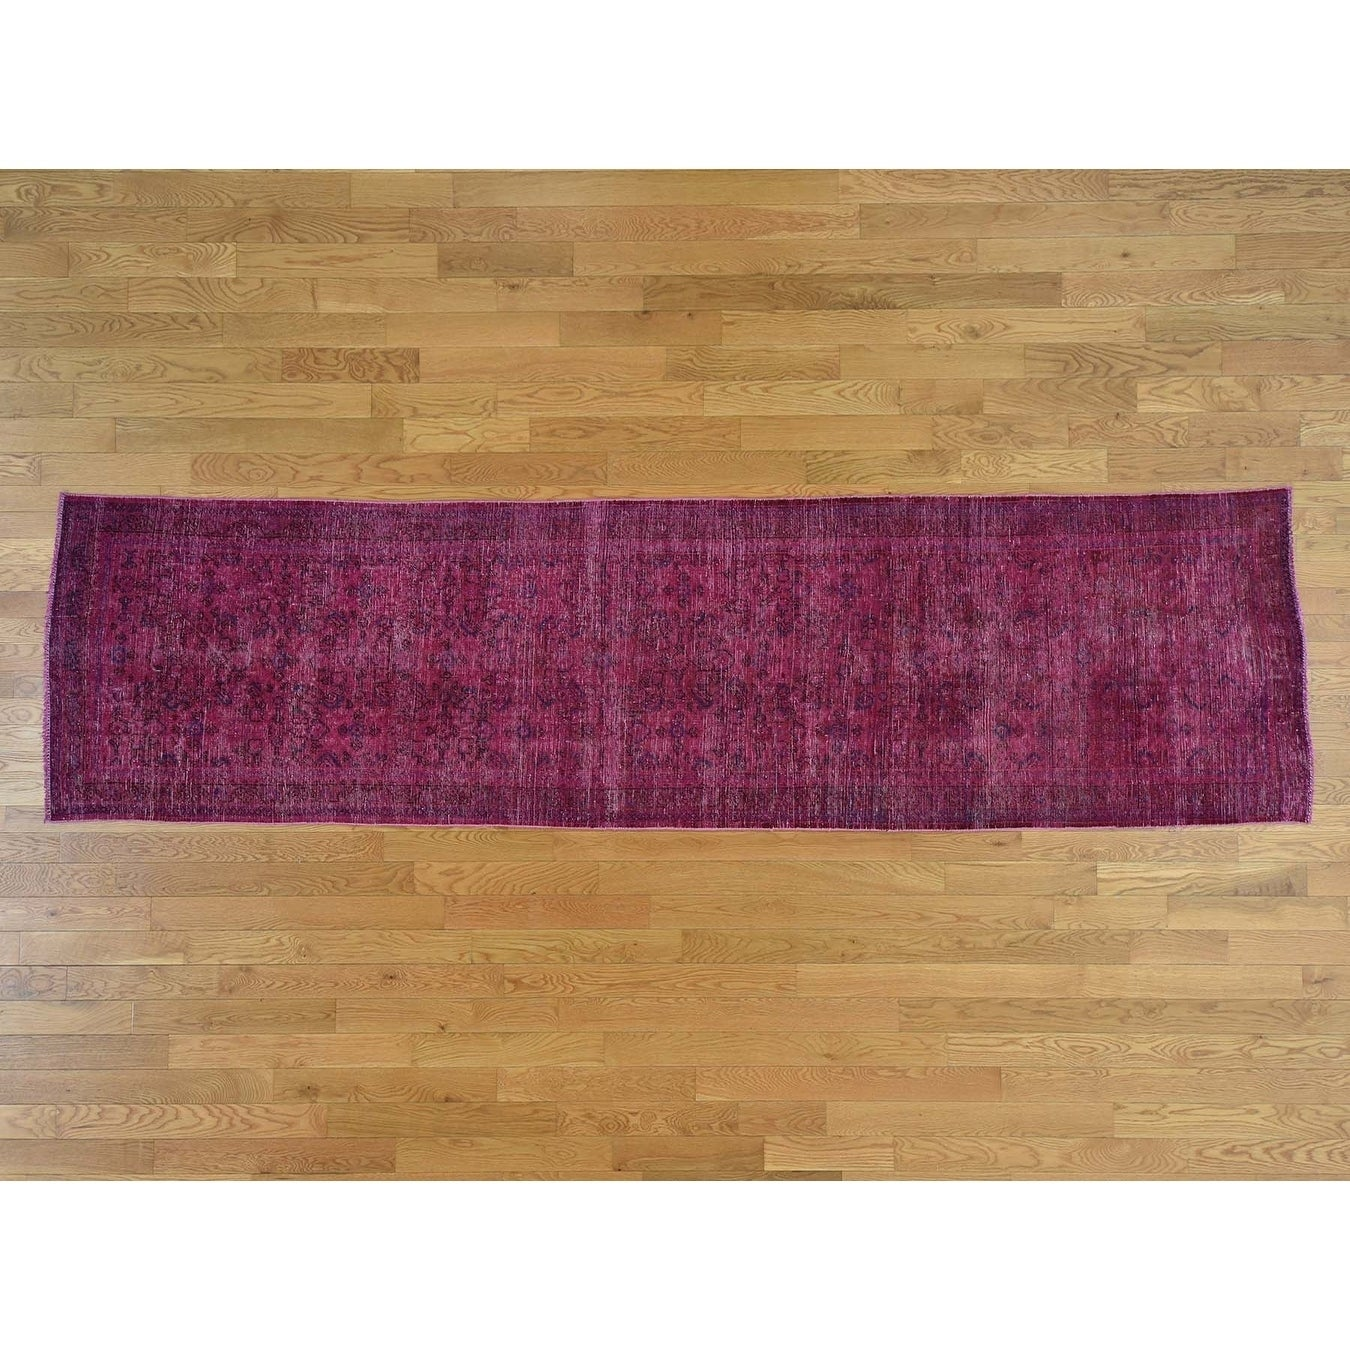 Hand Knotted Pink Overdyed & Vintage with Wool Oriental Rug - 34 x 127